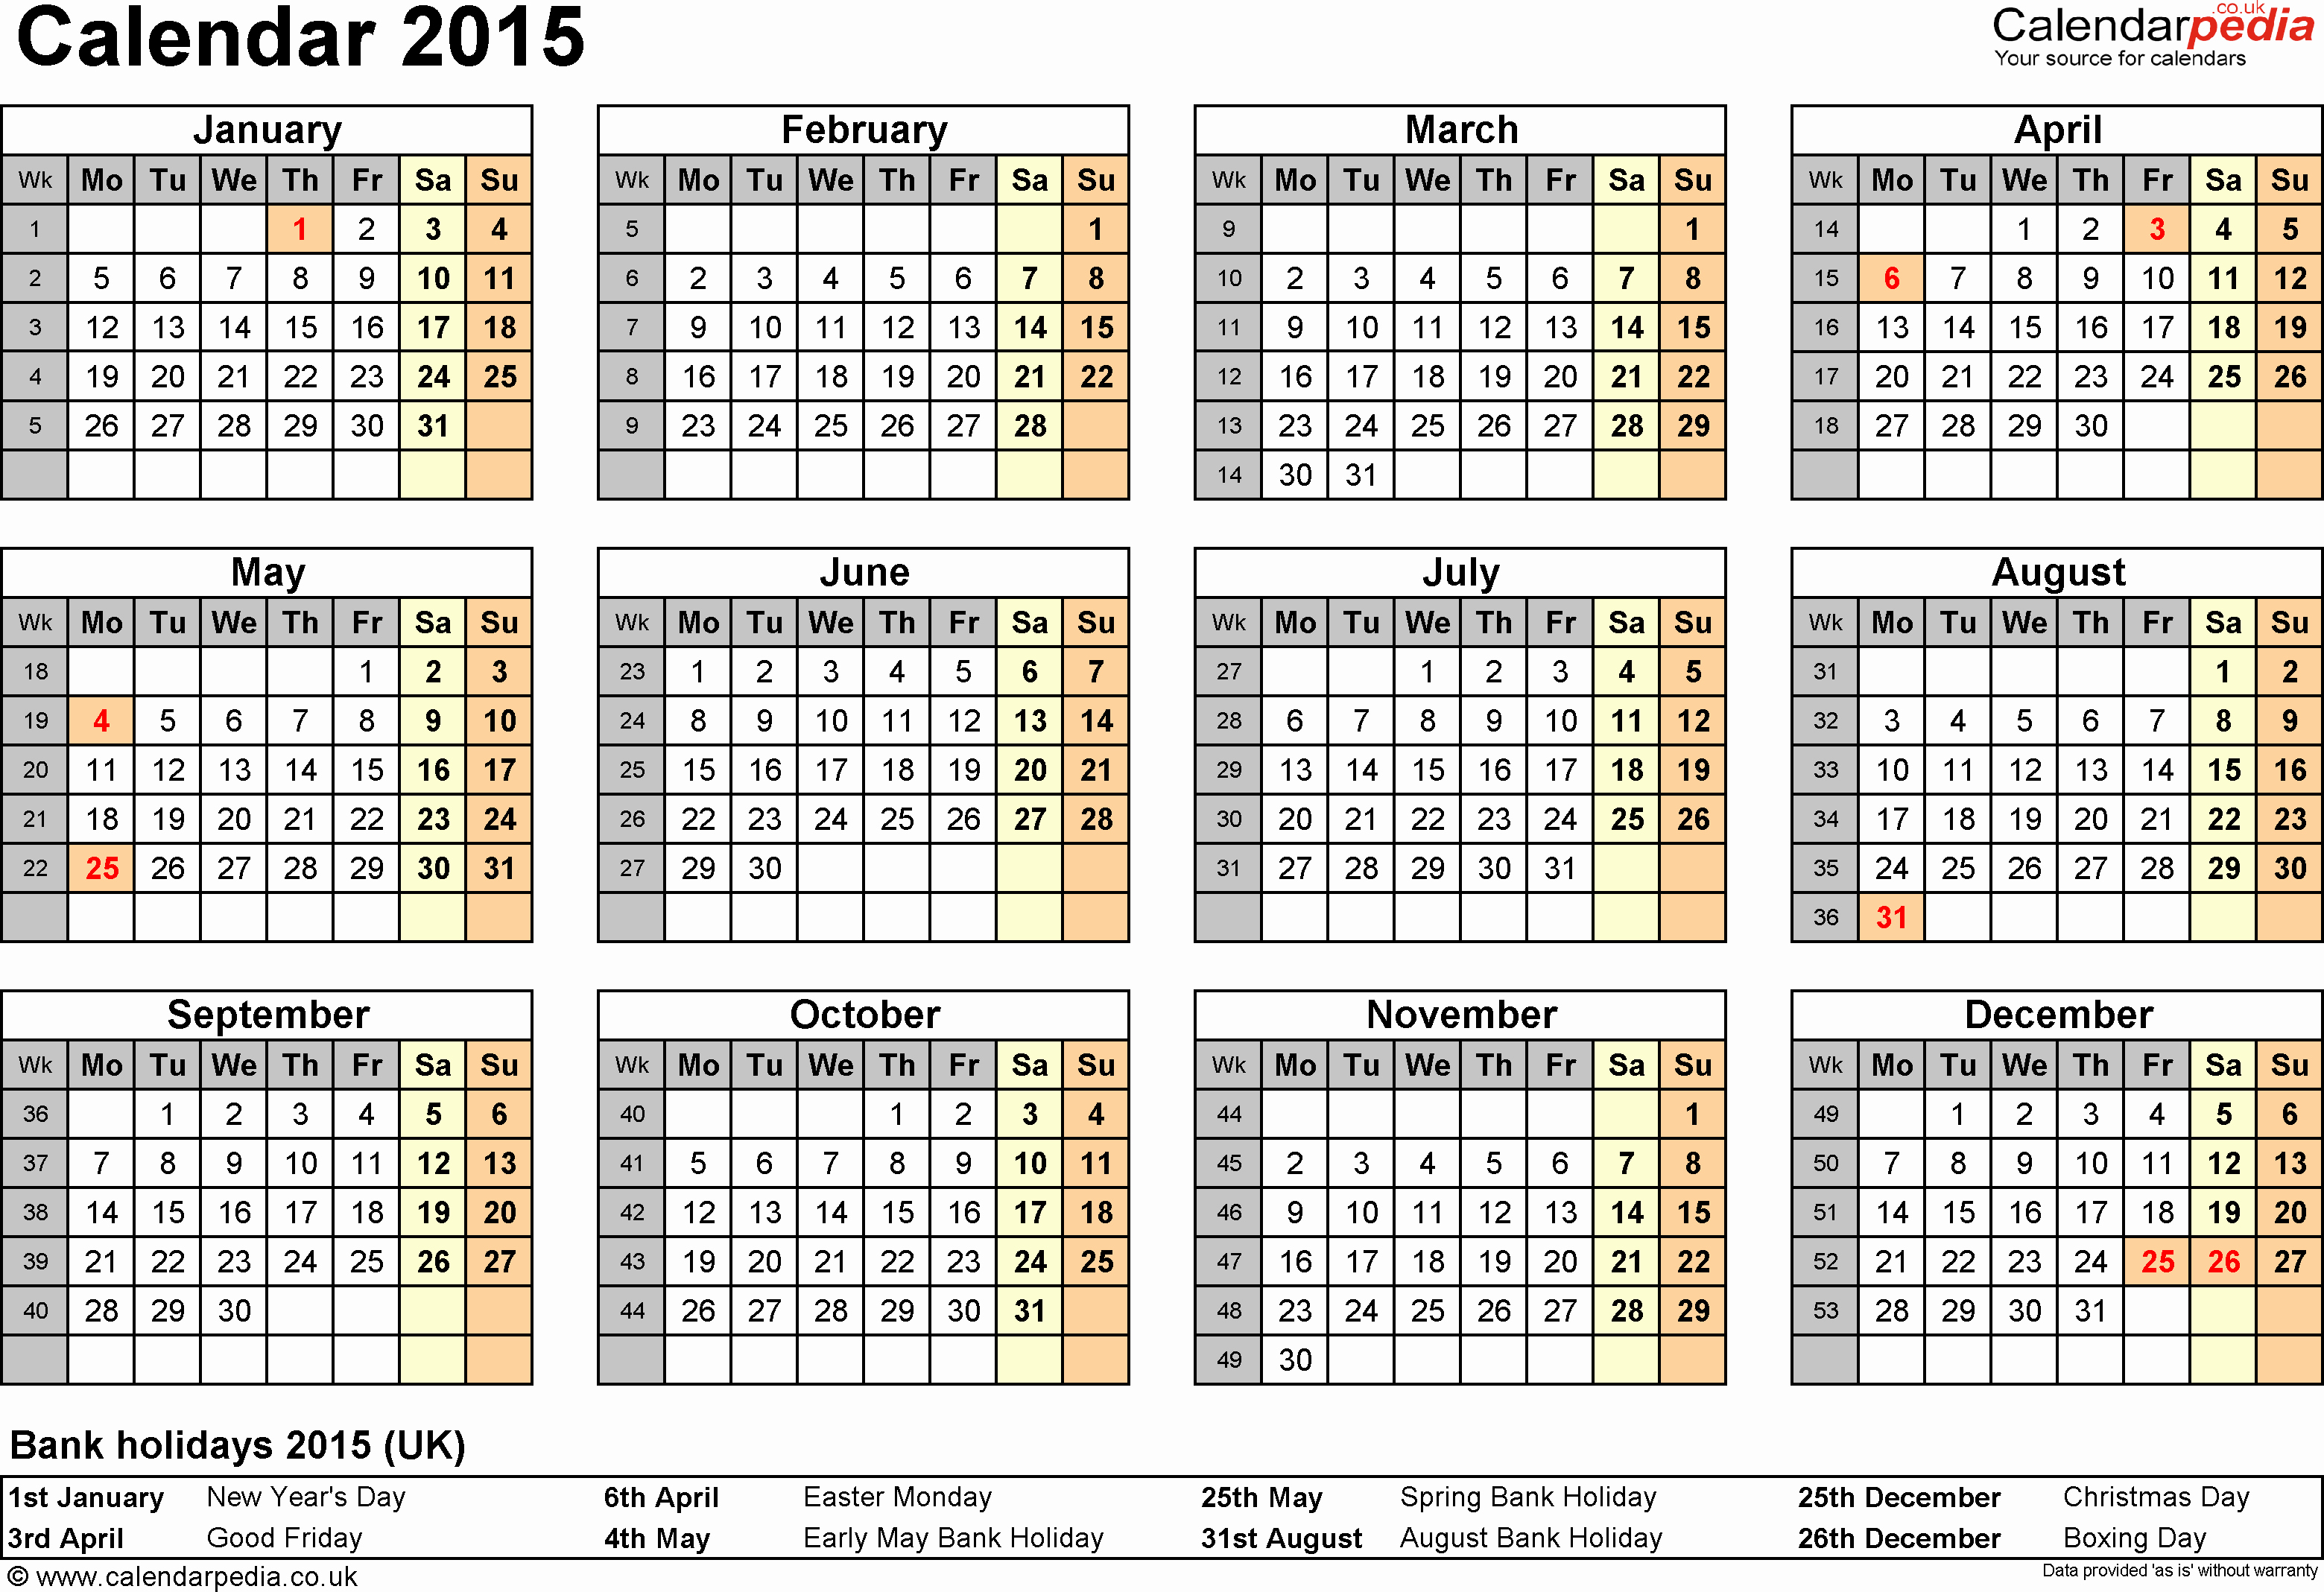 Free 2015 Yearly Calendar Template Lovely Calendar 2015 Uk 16 Free Printable Pdf Templates